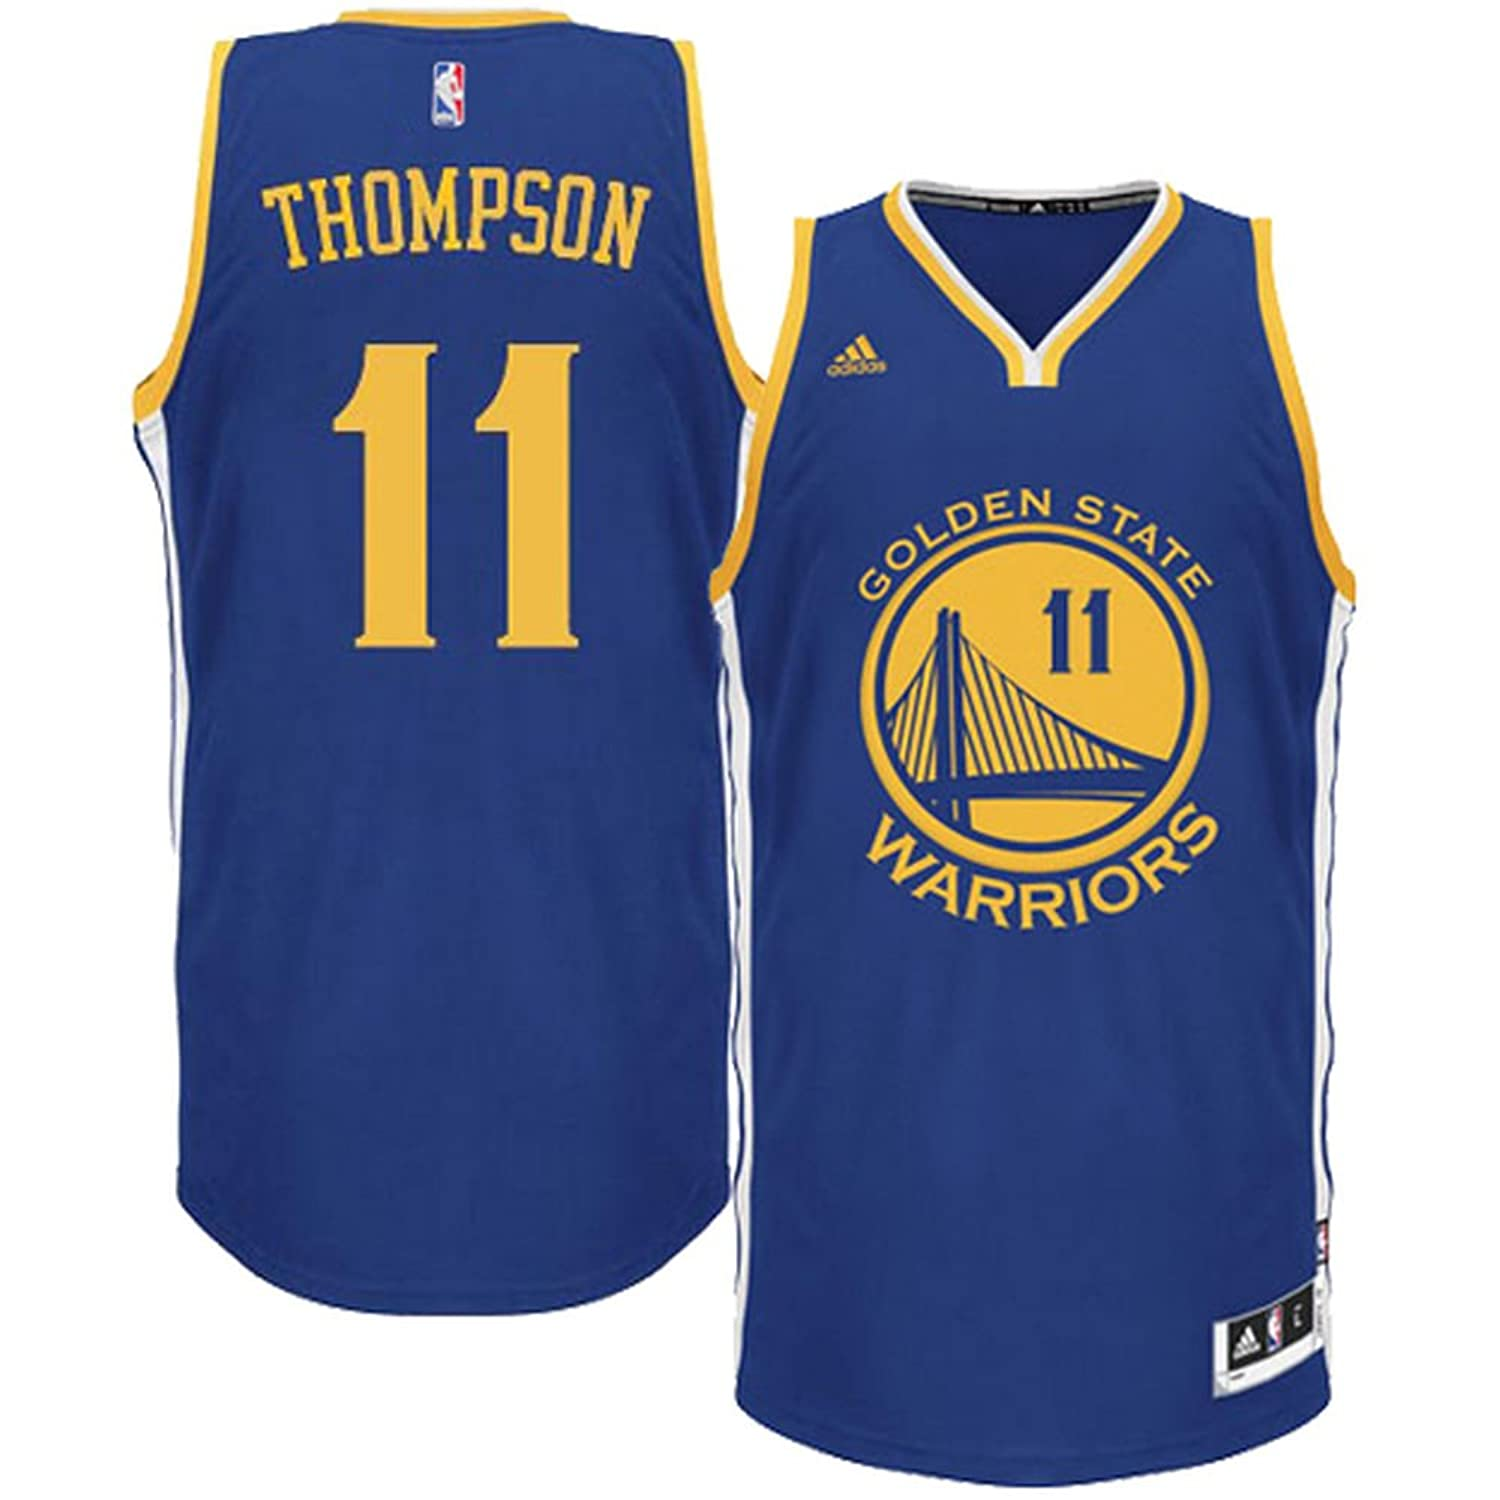 965f60bbfde Klay Thompson Golden State Warriors NBA Adidas Toddler Blue Road Replica  Jersey low-cost